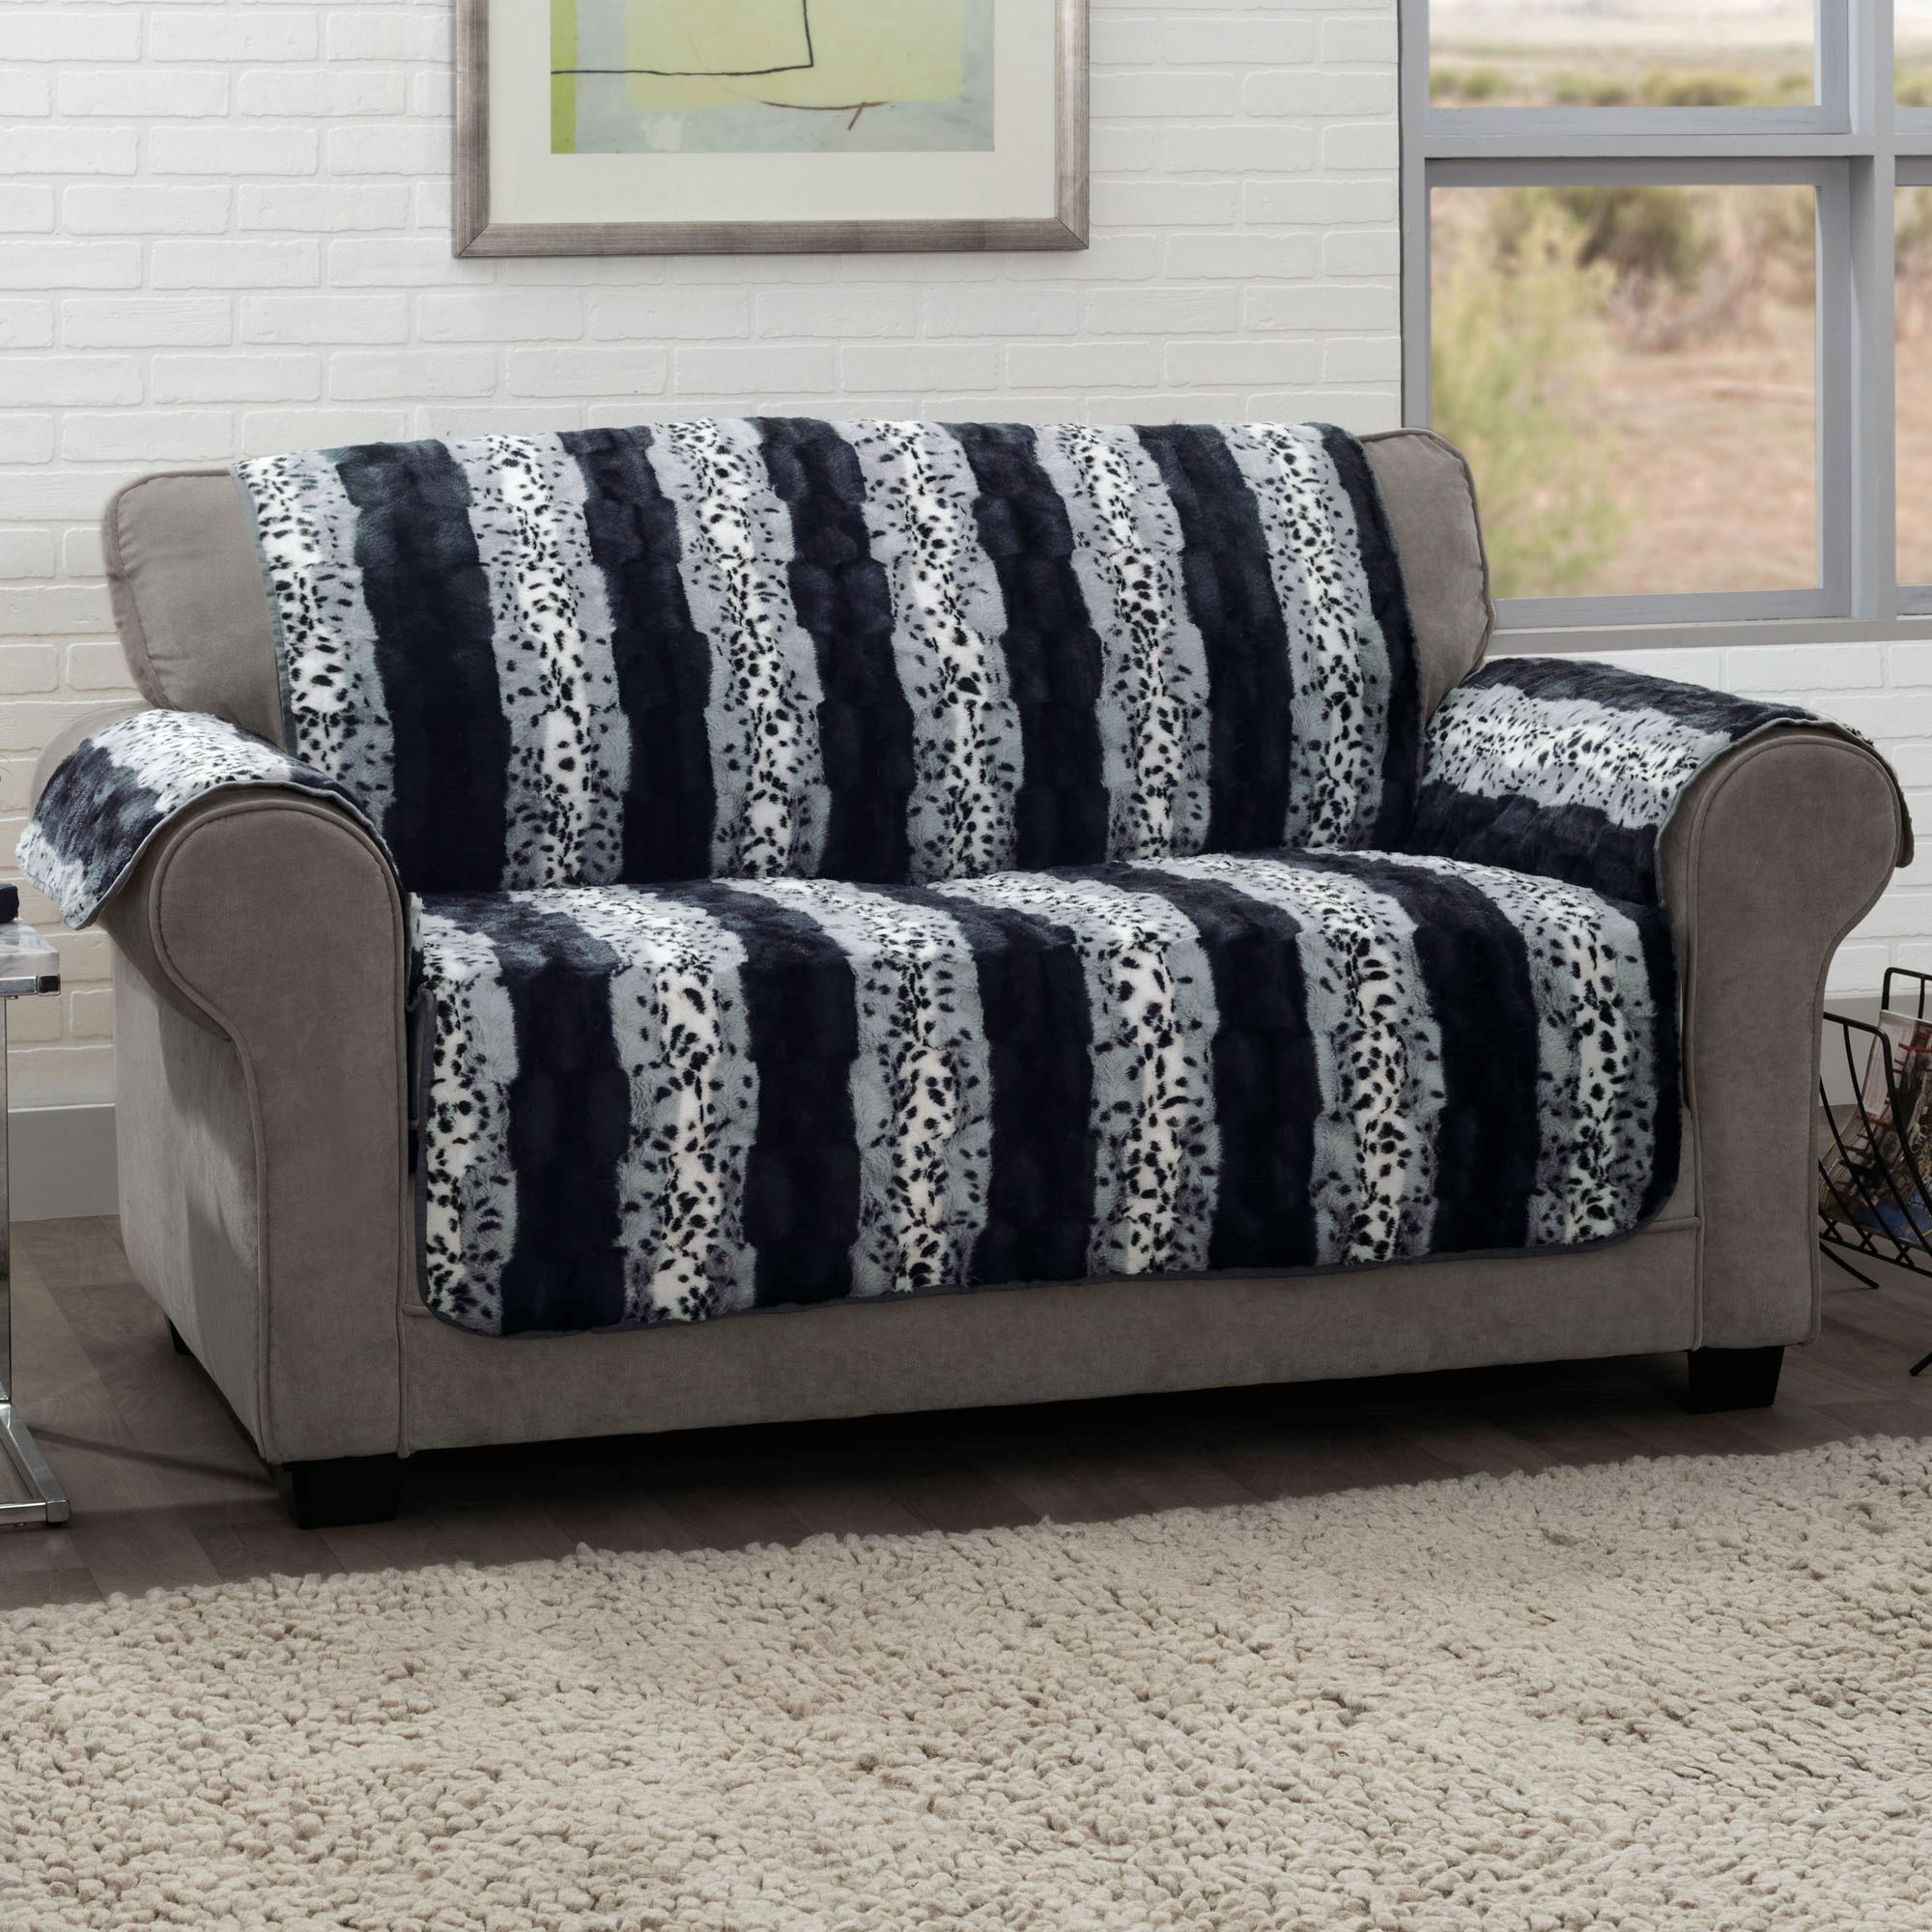 Prowl Furniture Protector Black Loveseat